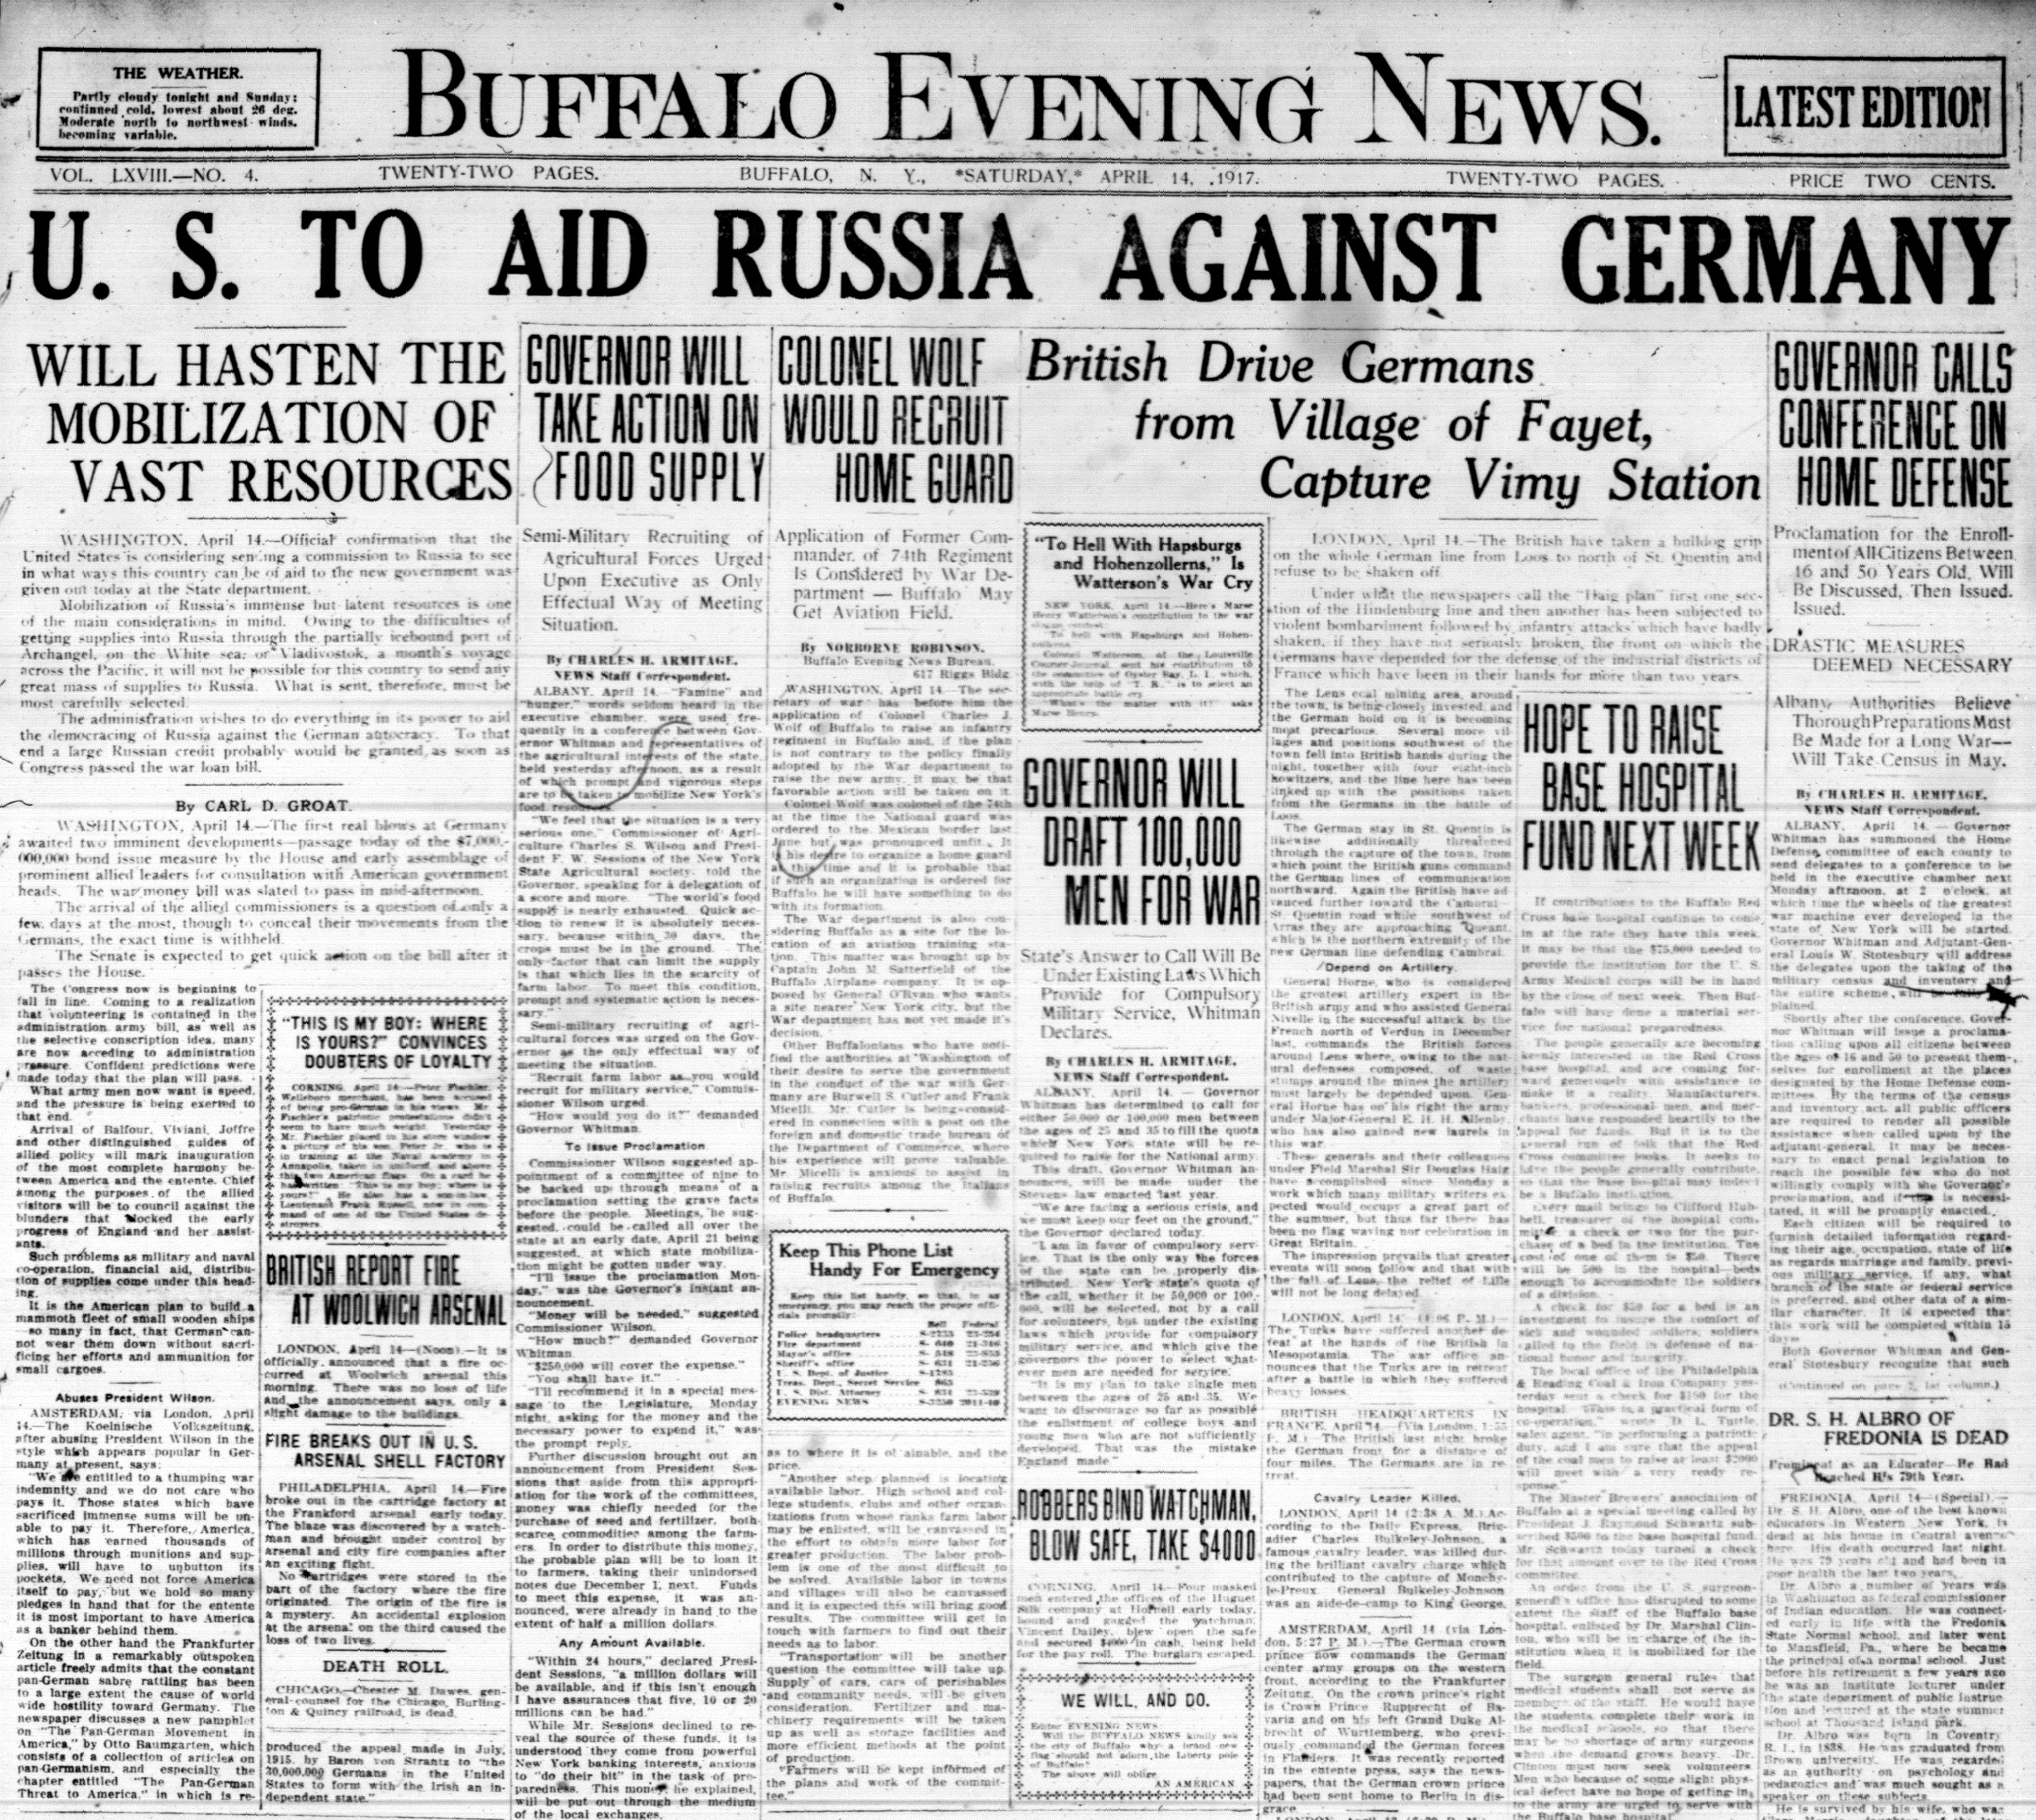 Front page, April 14, 1917: U.S. to aid Russia against